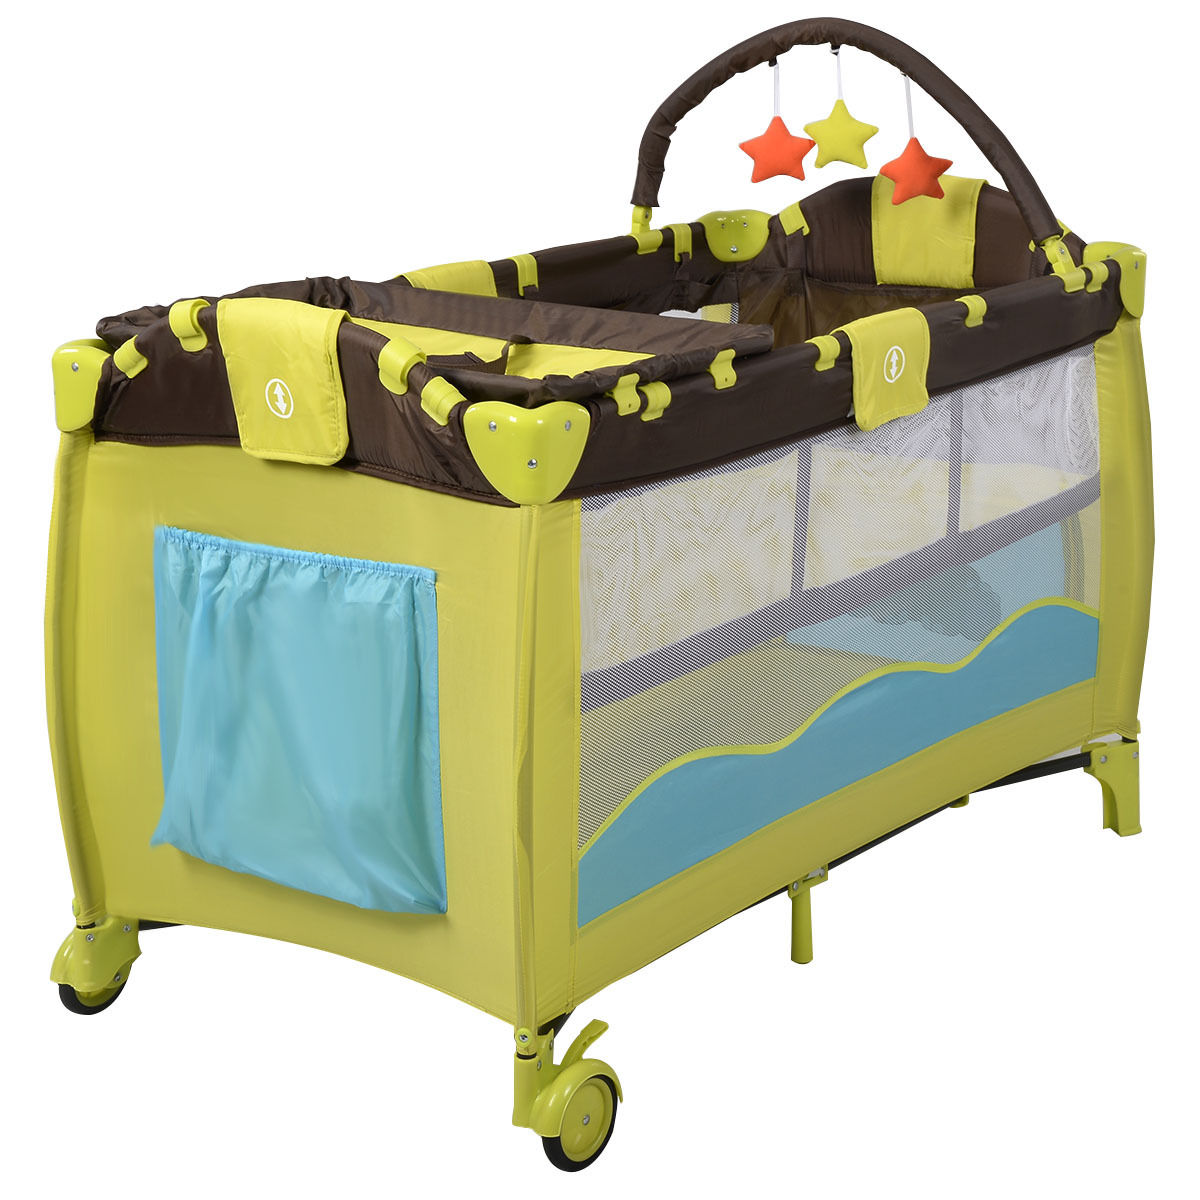 New Green Baby Crib Playpen Playard Pack Travel Infant Binet Bed Foldable Com